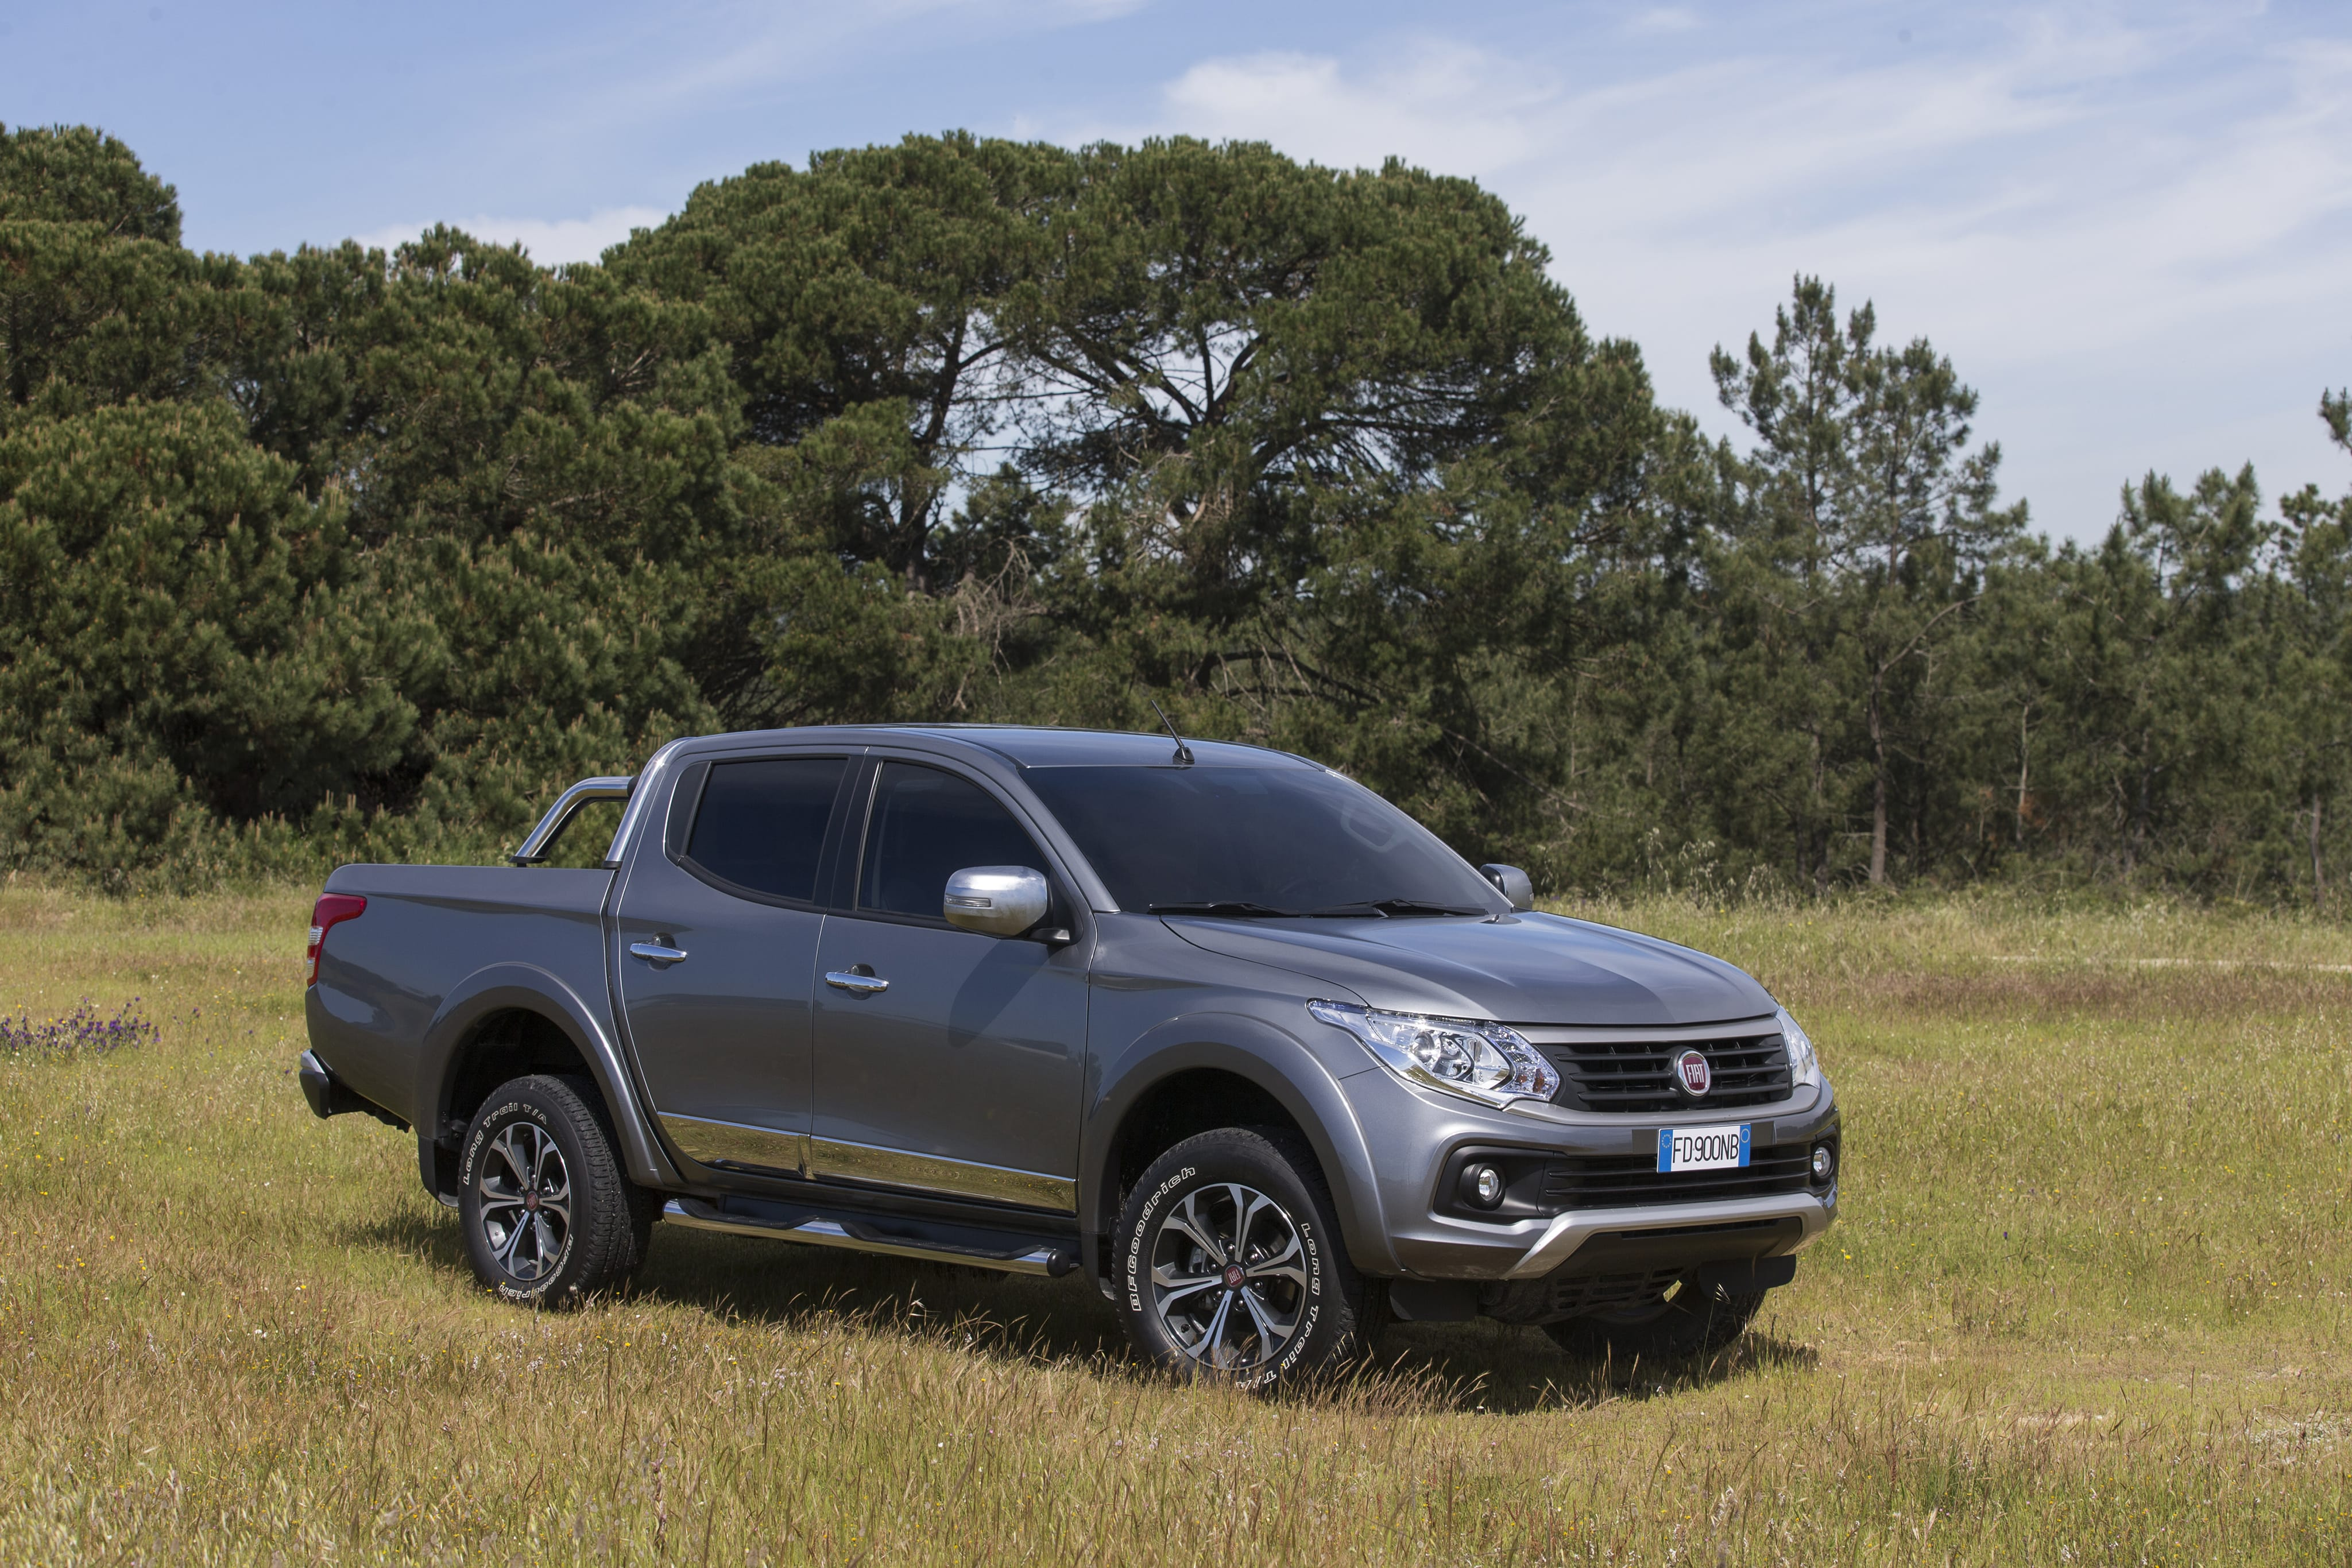 Fiat Fullback Wallpapers hd